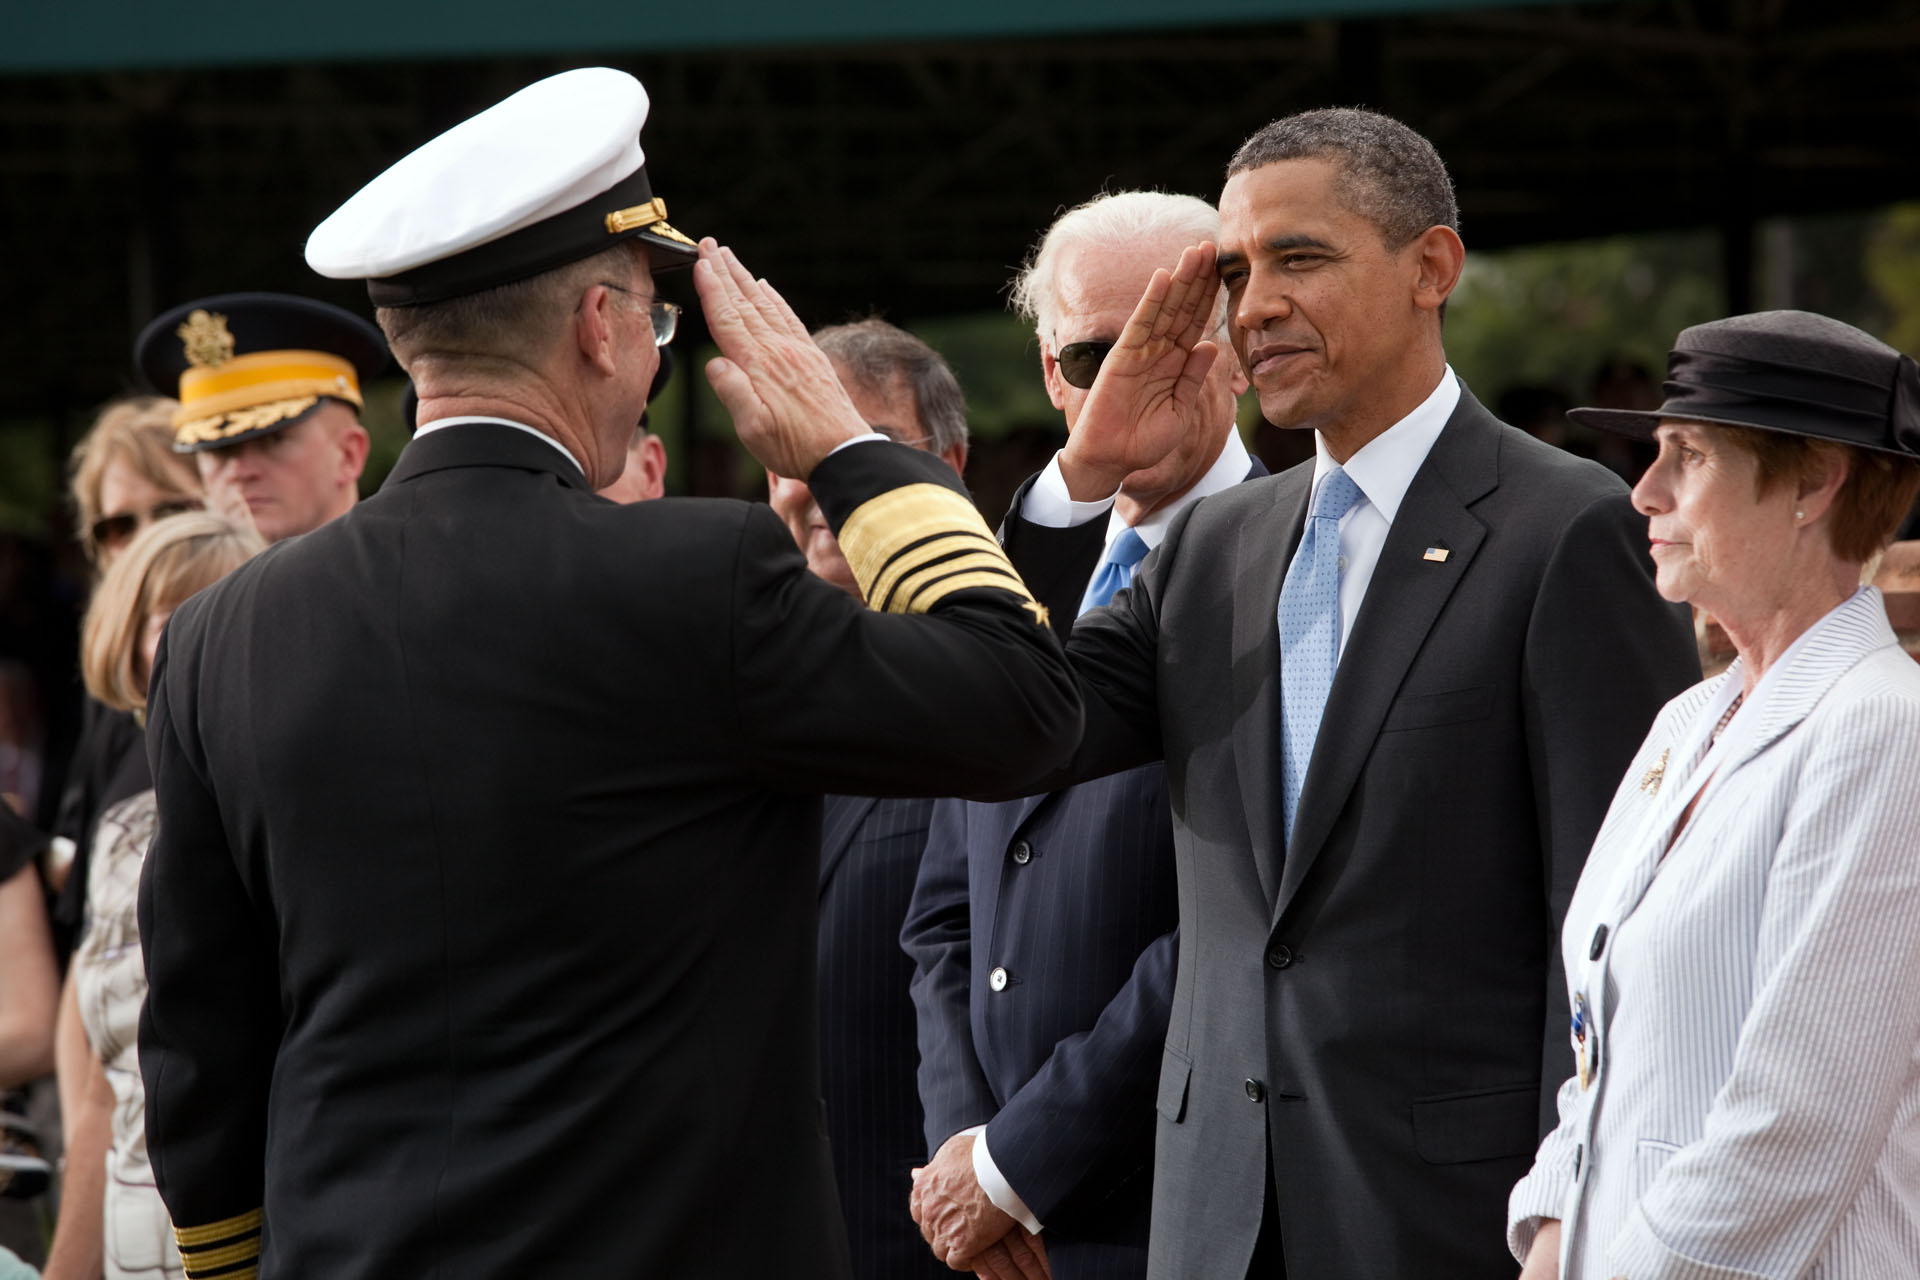 President Barack Obama salutes Chairman of the Joint Chiefs of Staff Admiral Mike Mullen